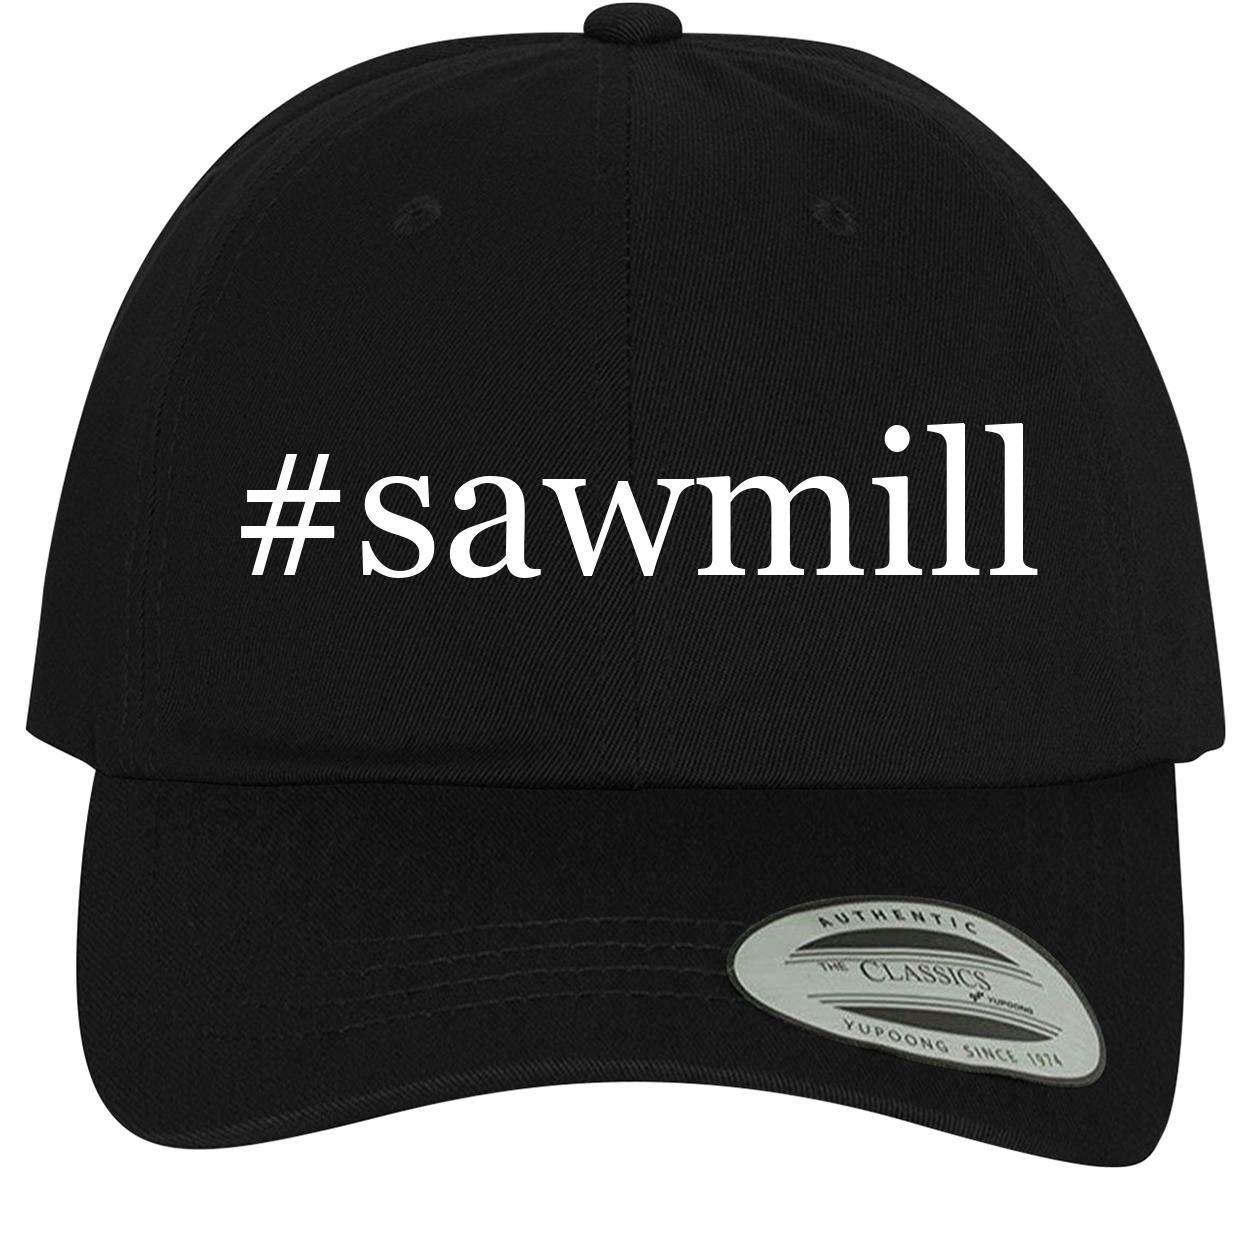 Comfortable Dad Hat Baseball Cap BH Cool Designs #Sawmill